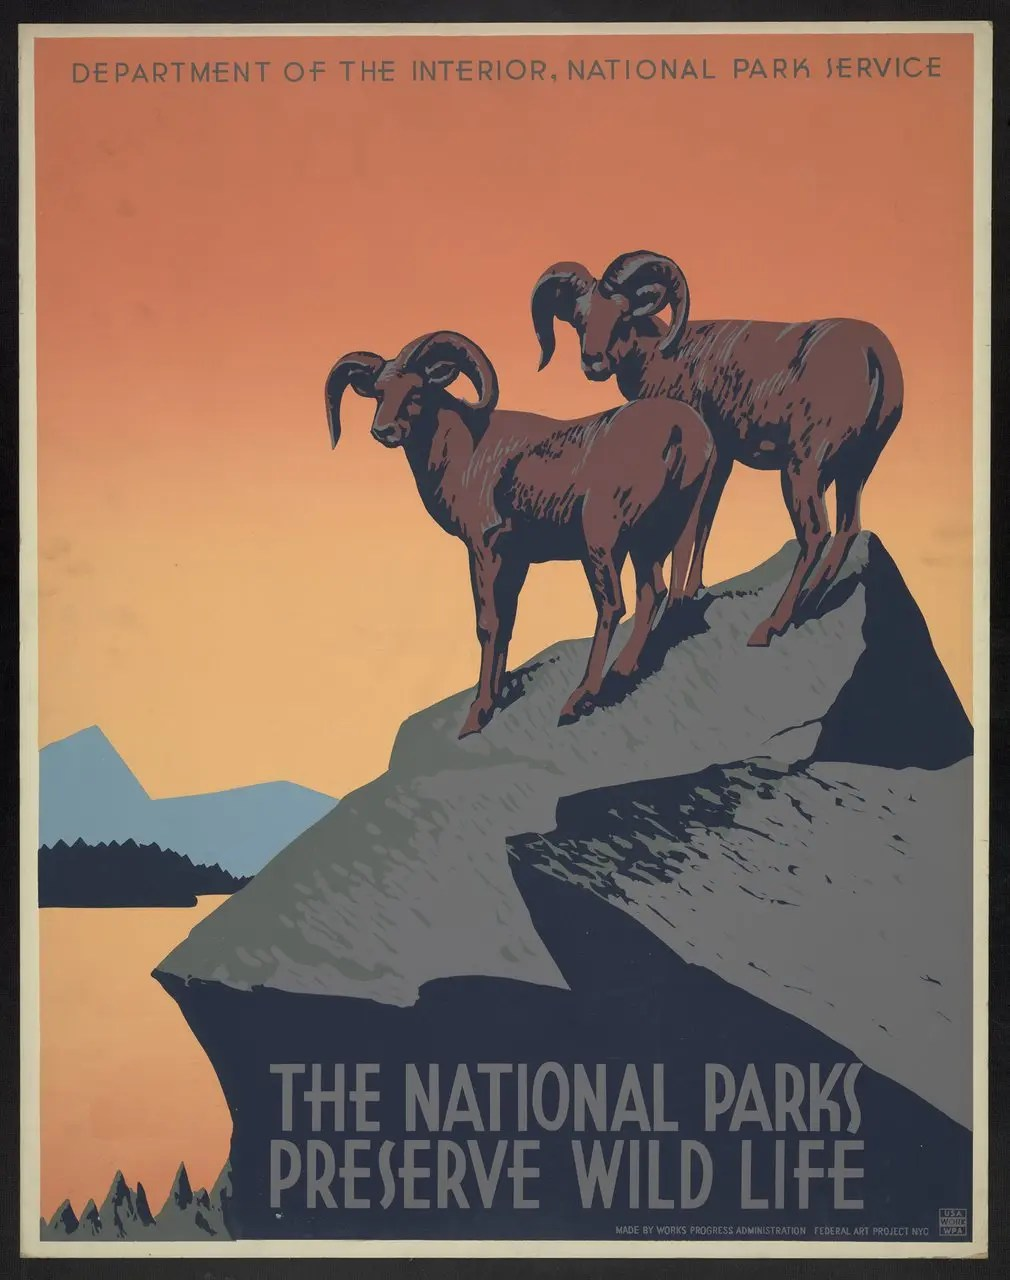 Two bighorn sheep invite travelers to national parks, 1939.